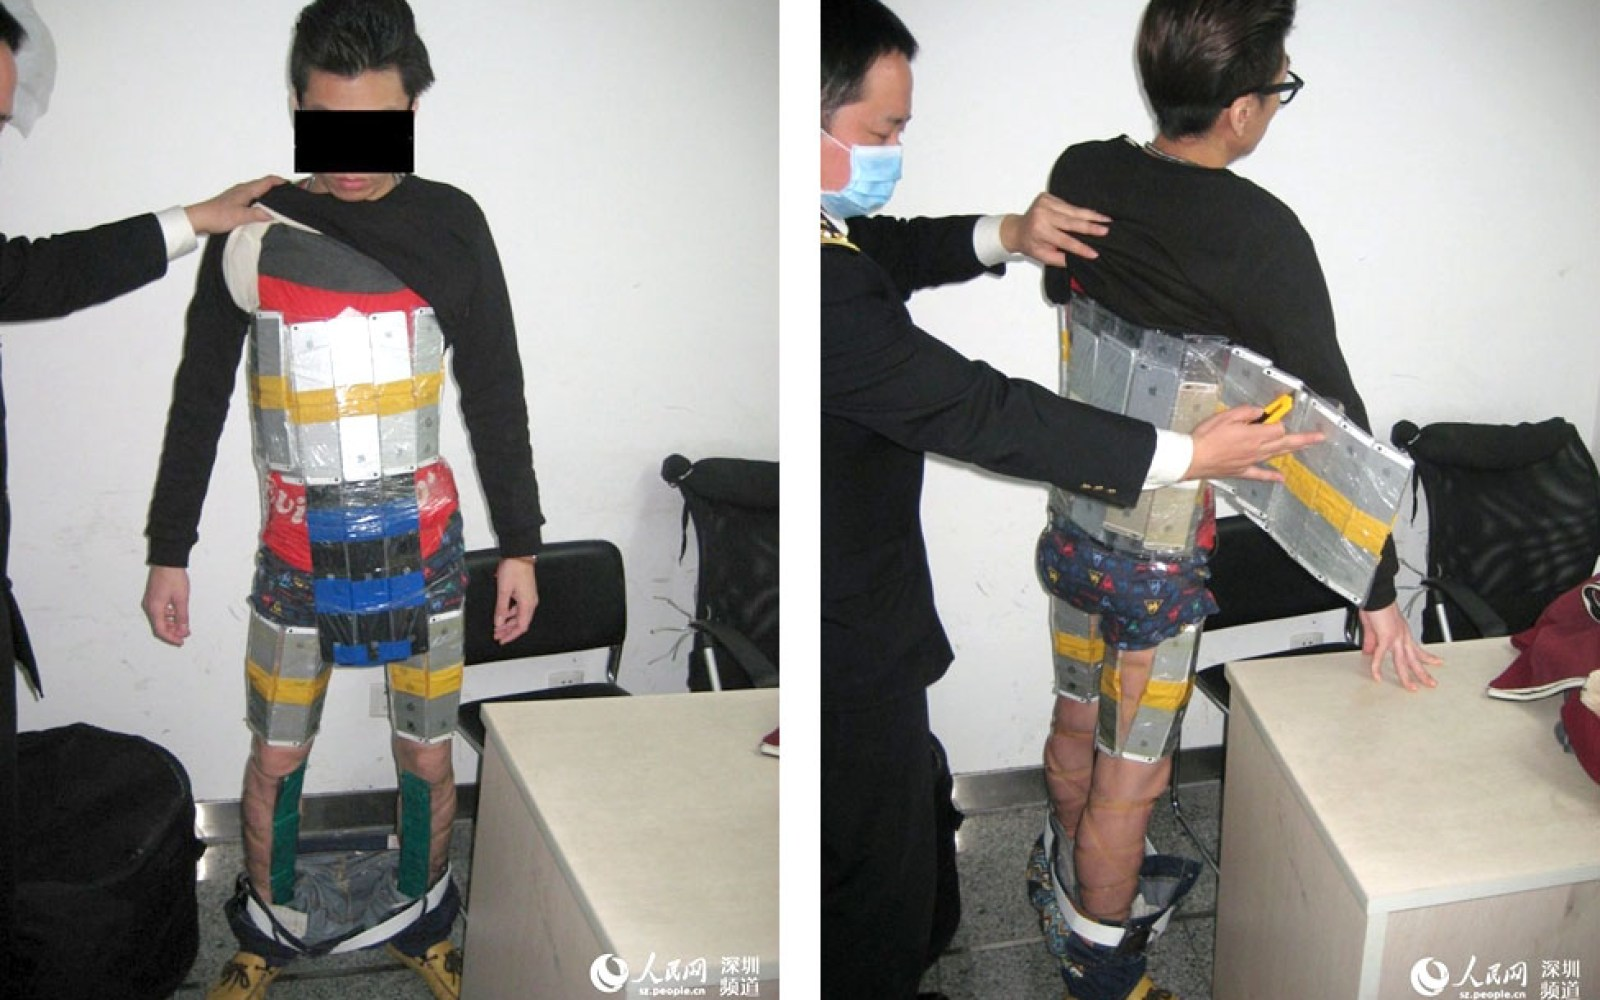 Chinese iPhone smuggler caught with 94 iPhones strapped to his body